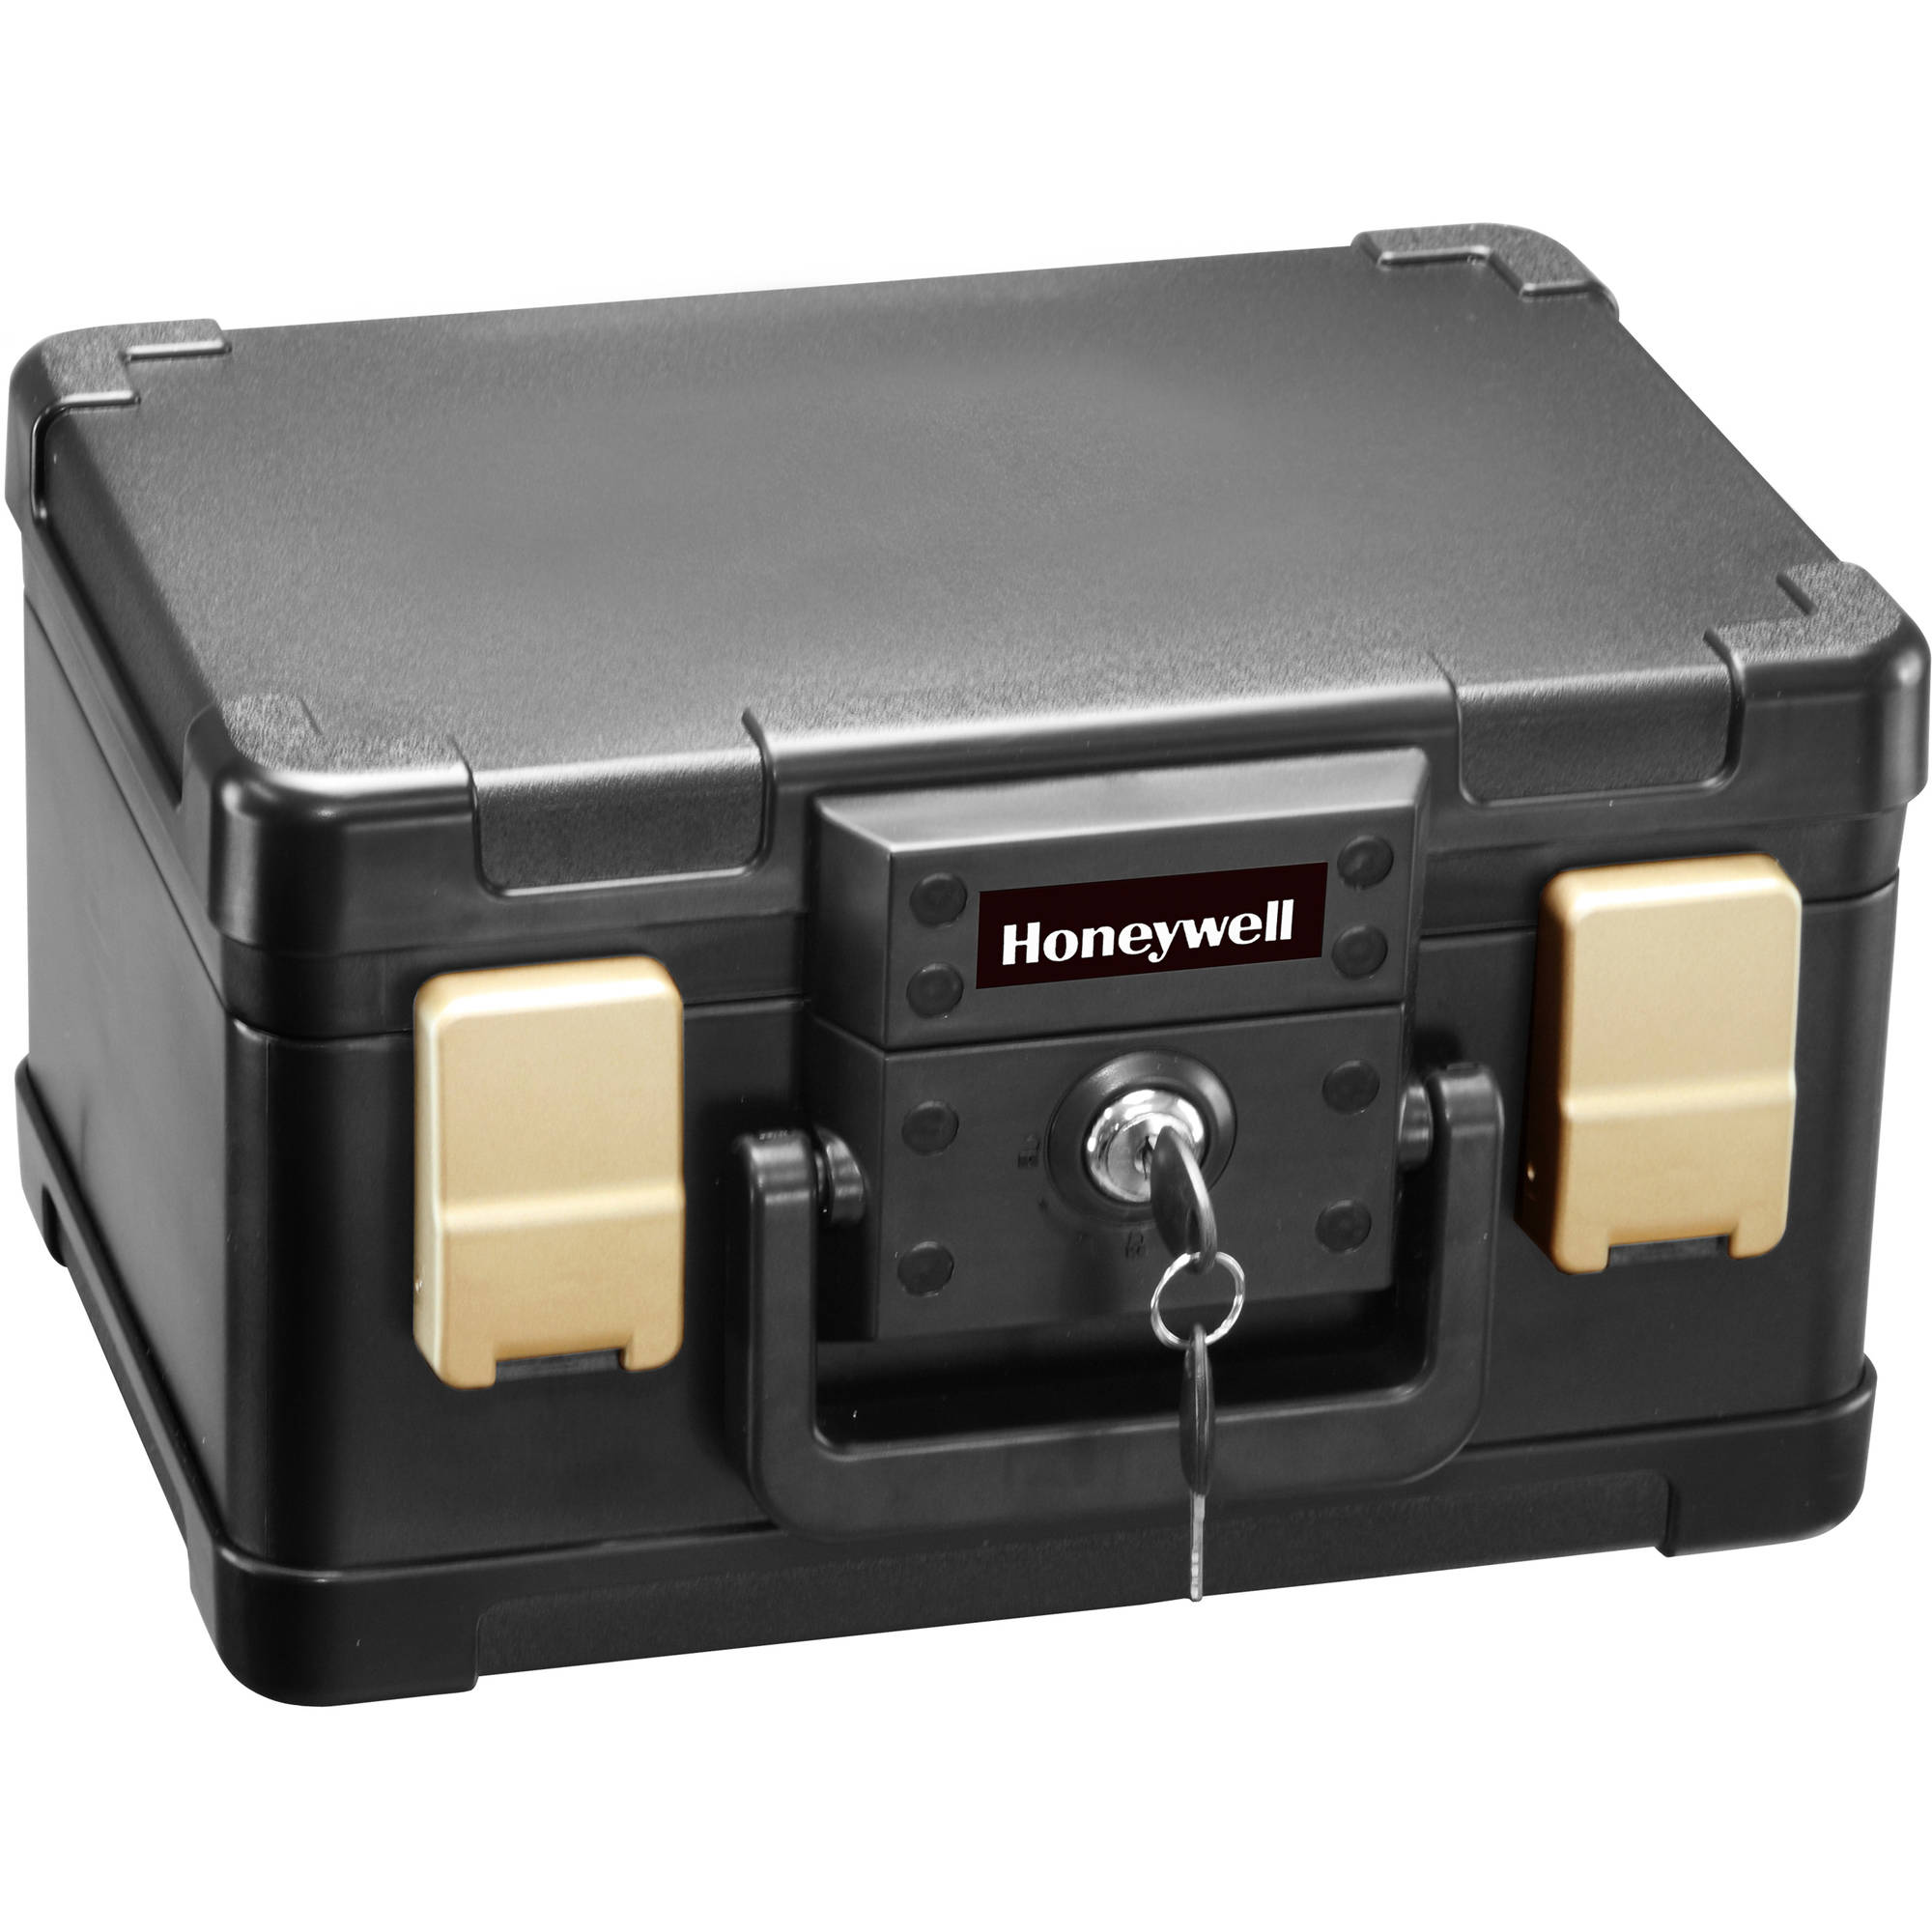 Honeywell .15 cu ft Waterproof 30-Minute Fire Chest, 1102